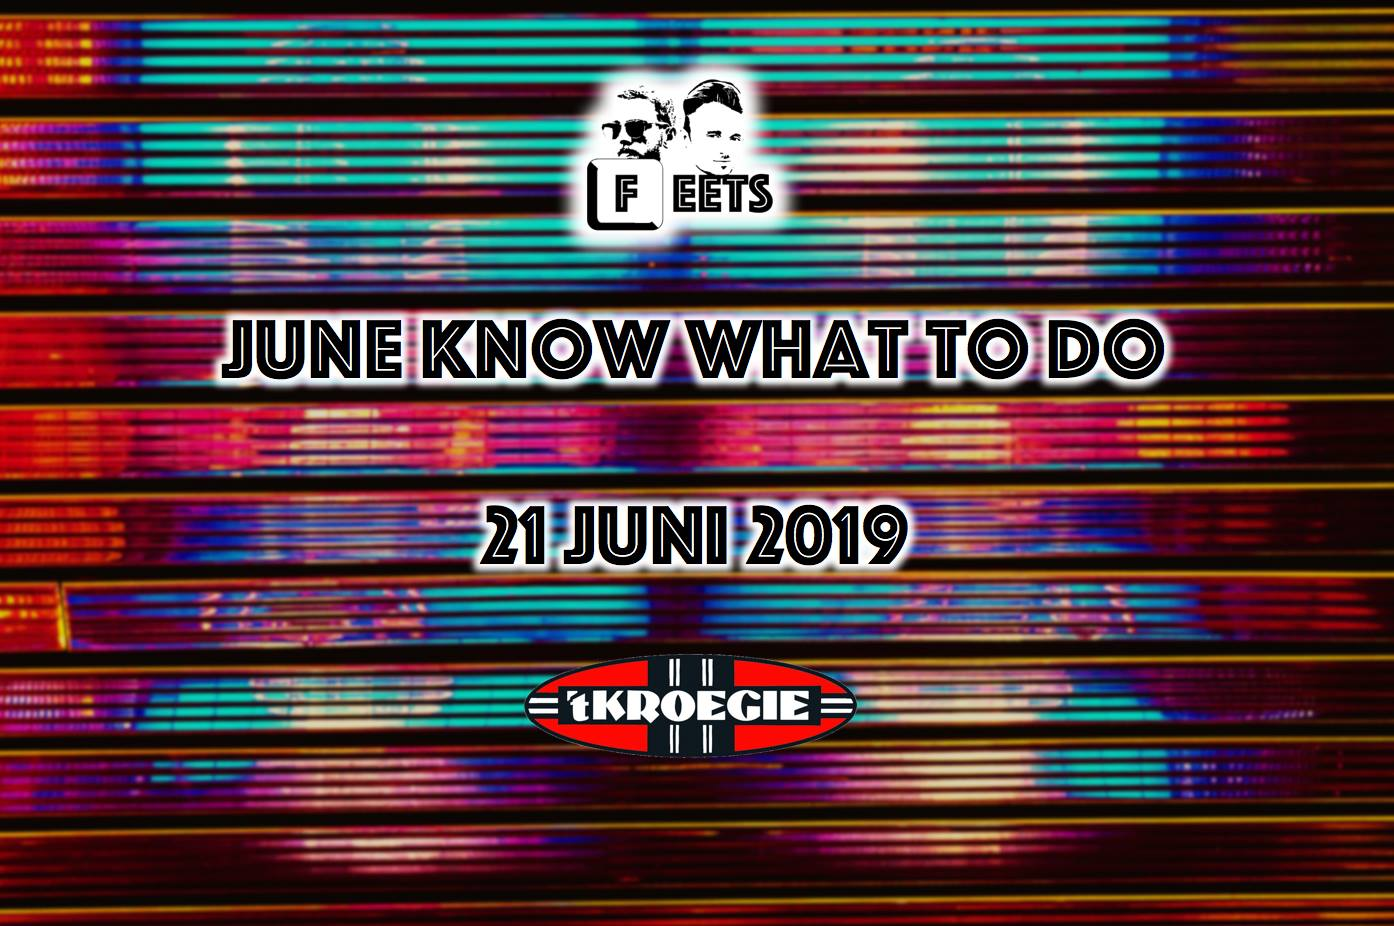 Feets presents: June know what to do!